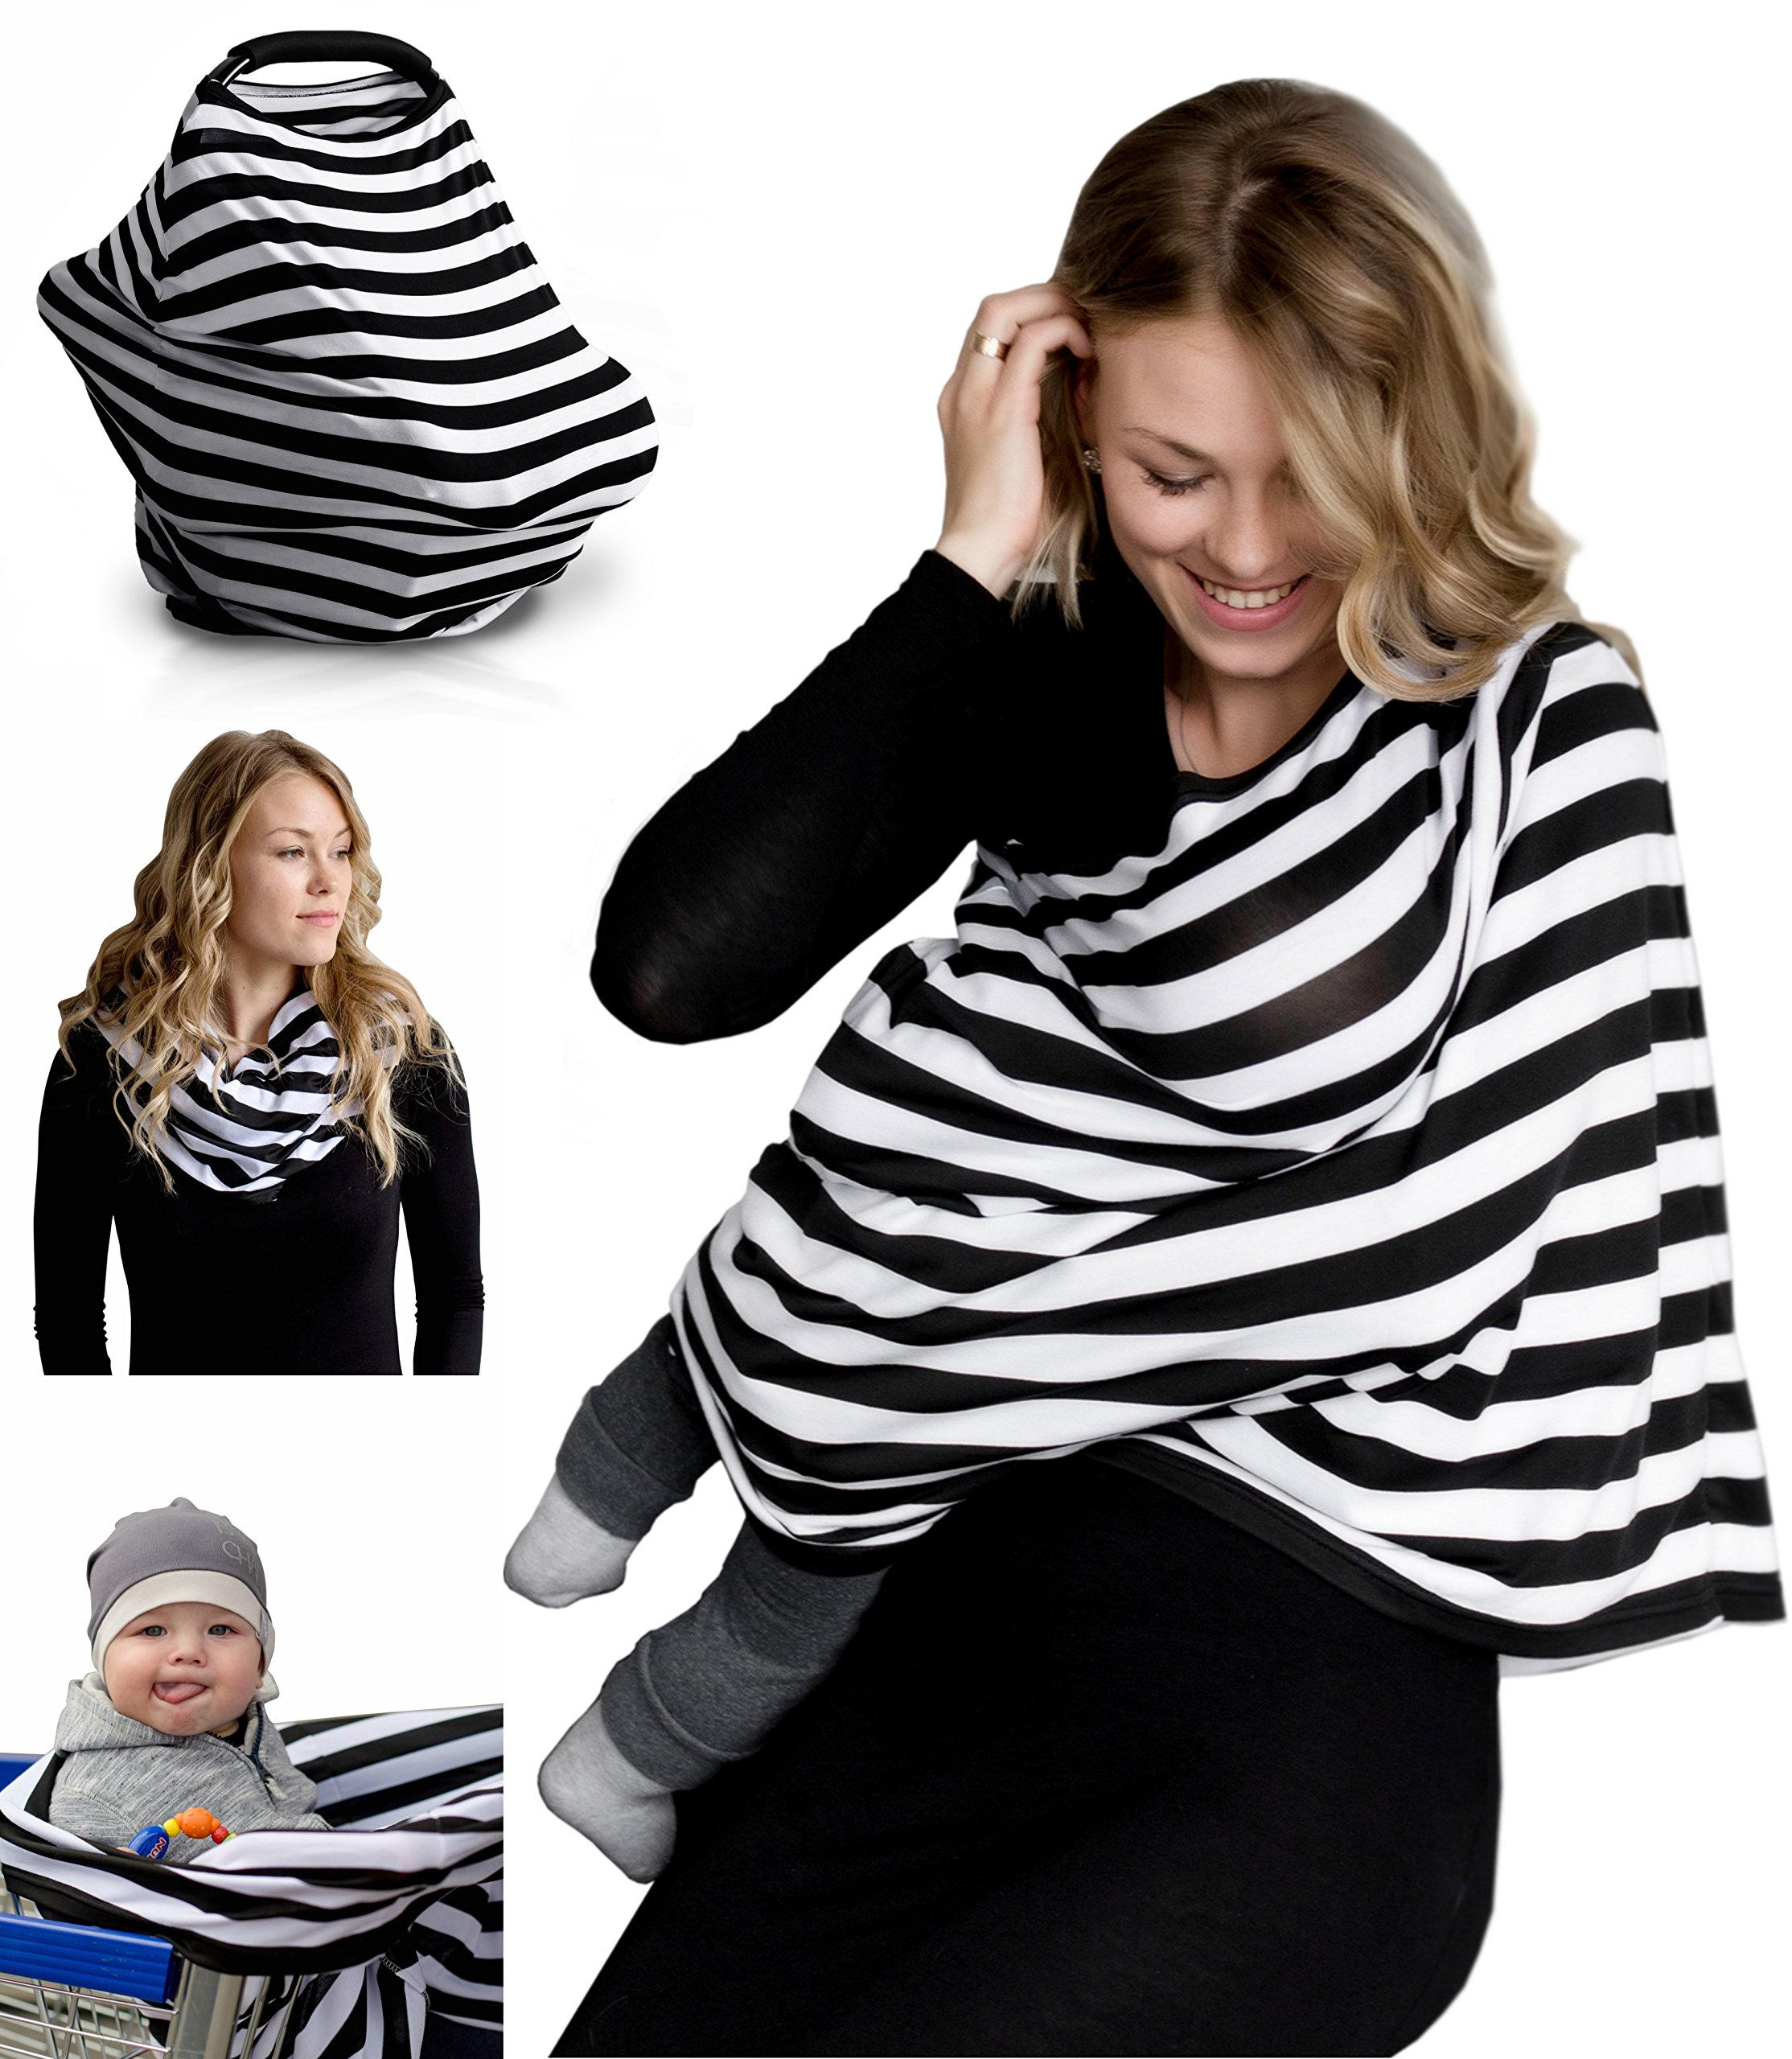 Nursing Breastfeeding Cover Scarf - Baby Car Seat Canopy, Shopping Cart, Stroller, Carseat Covers for Girls and Boys - Best Multi-Use Infinity Stretchy Shawl